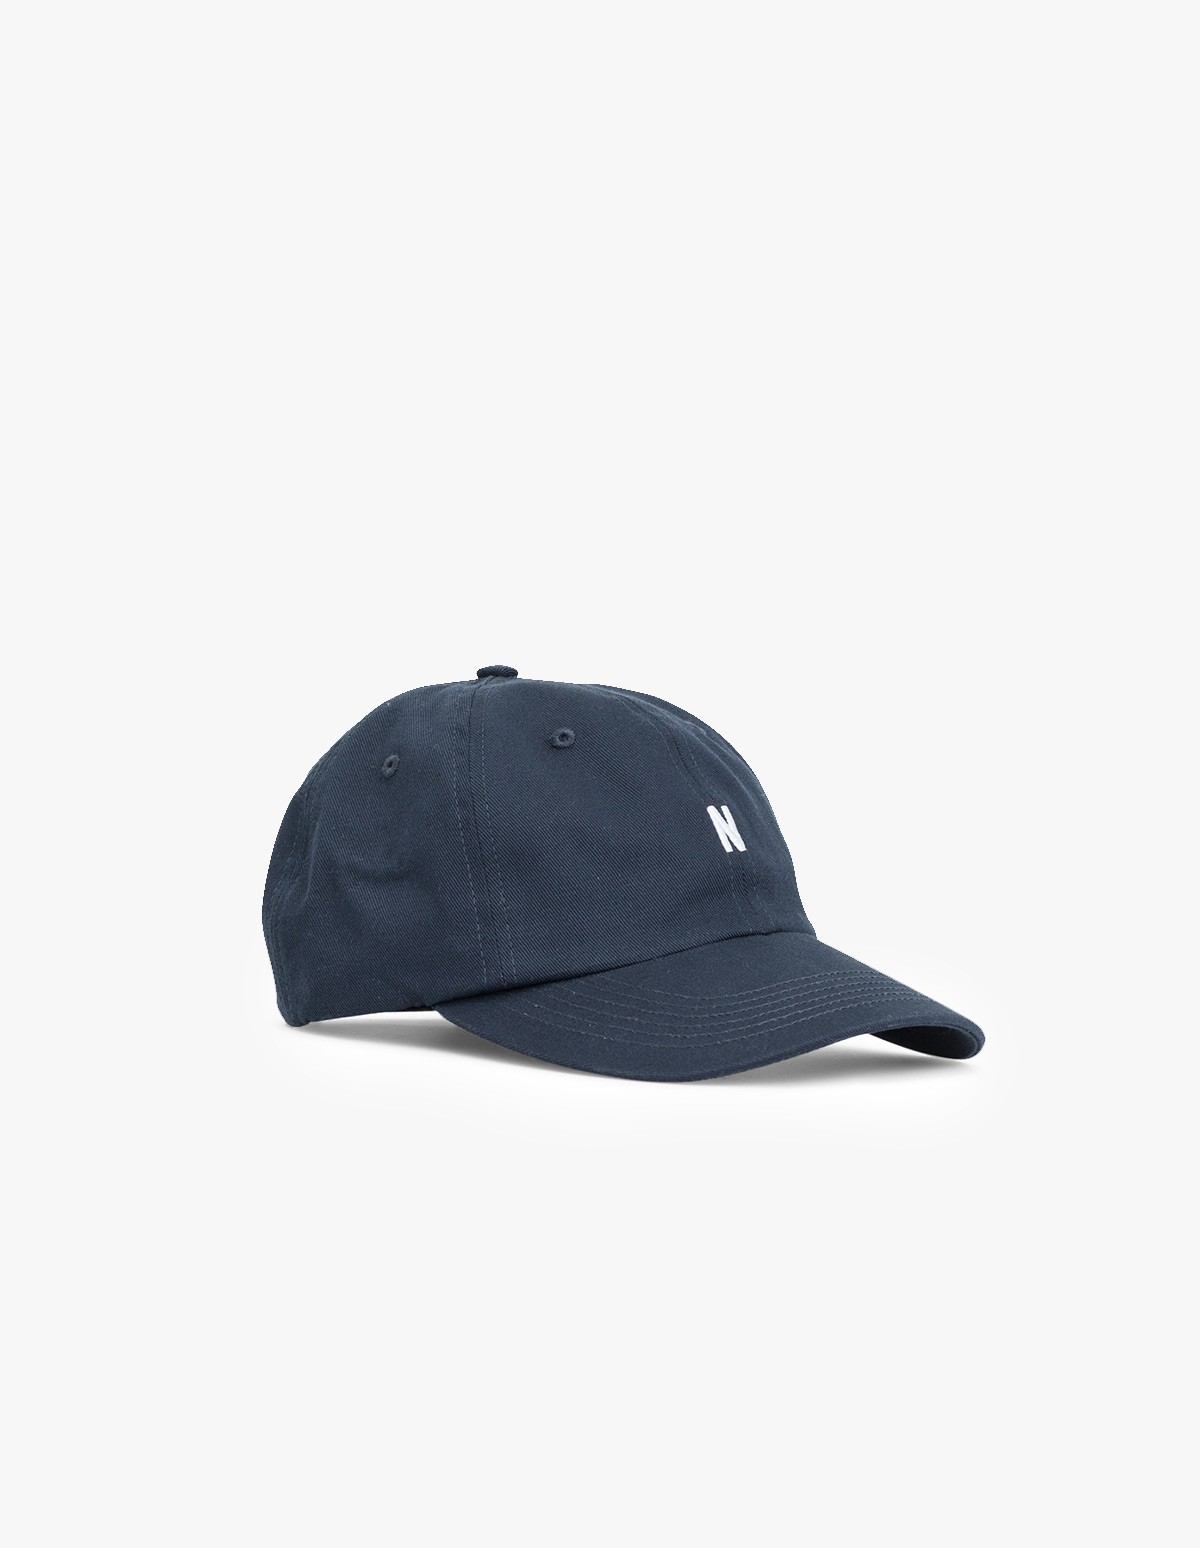 Norse Projects Twill Sports Cap in Dark Navy